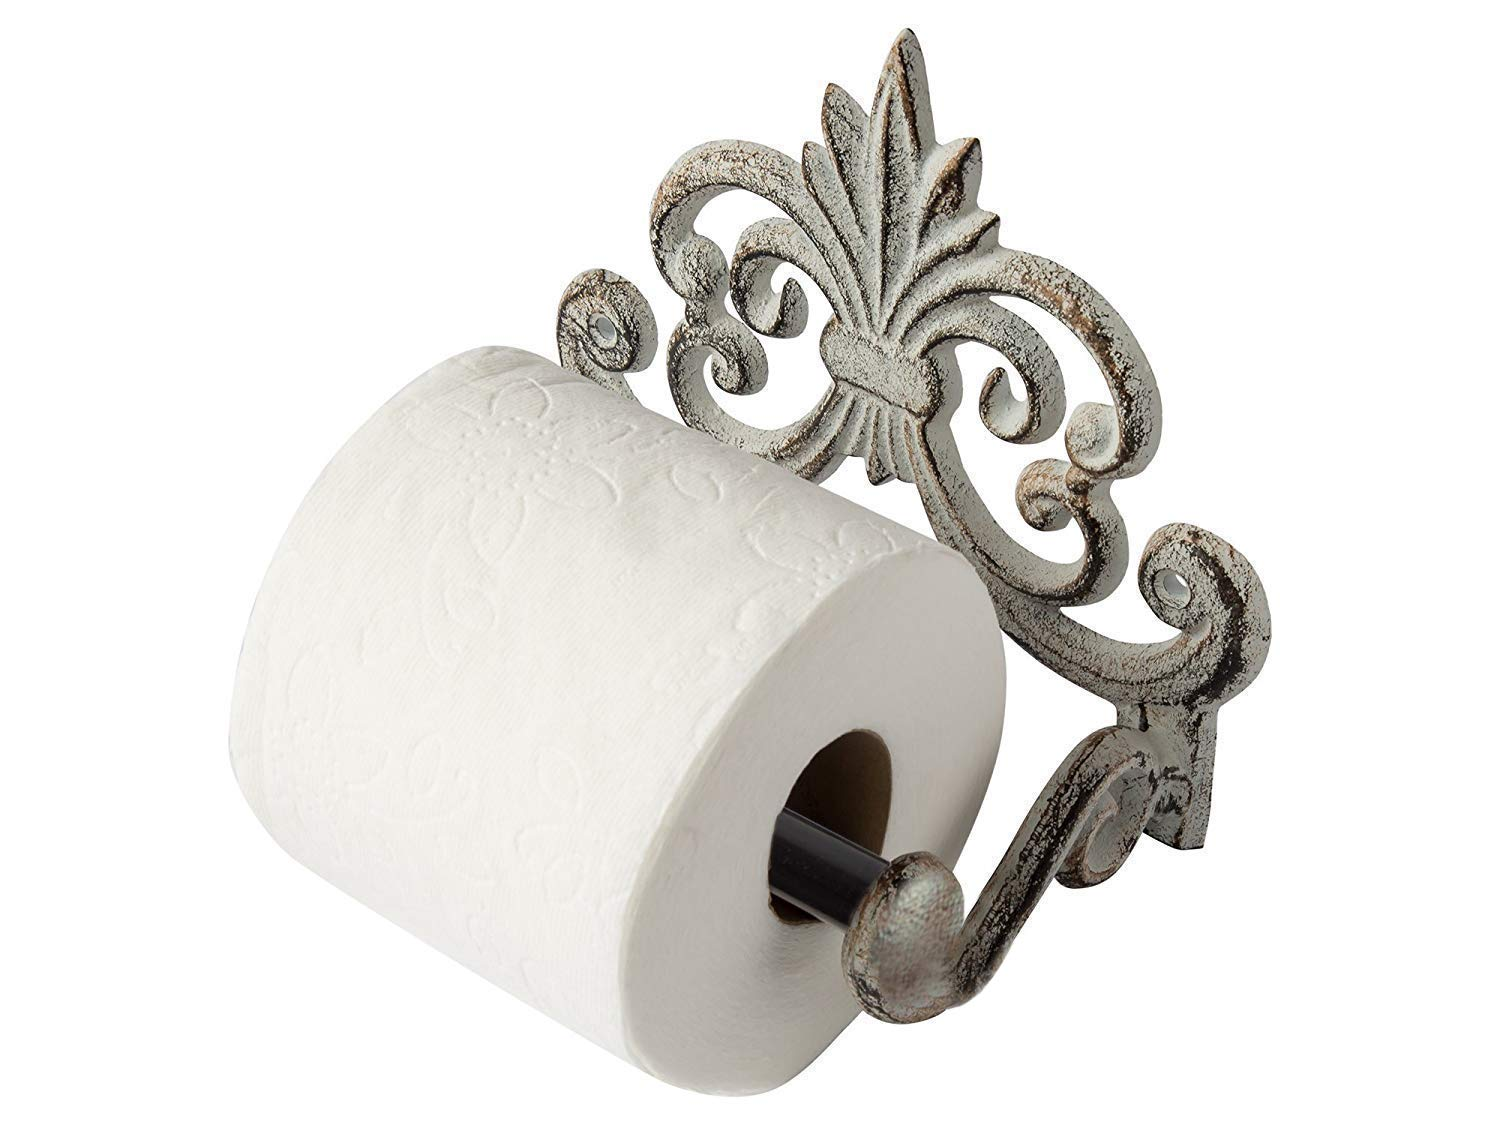 """Comfify Fleur De Lis Cast Iron Toilet Paper Roll Holder - Cast Iron Wall Mounted Toilet Tissue Holder - European Vintage Design - 6.75"""" x 6.25"""" x 4.25"""" - with Screws and Anchors (Antique White)"""